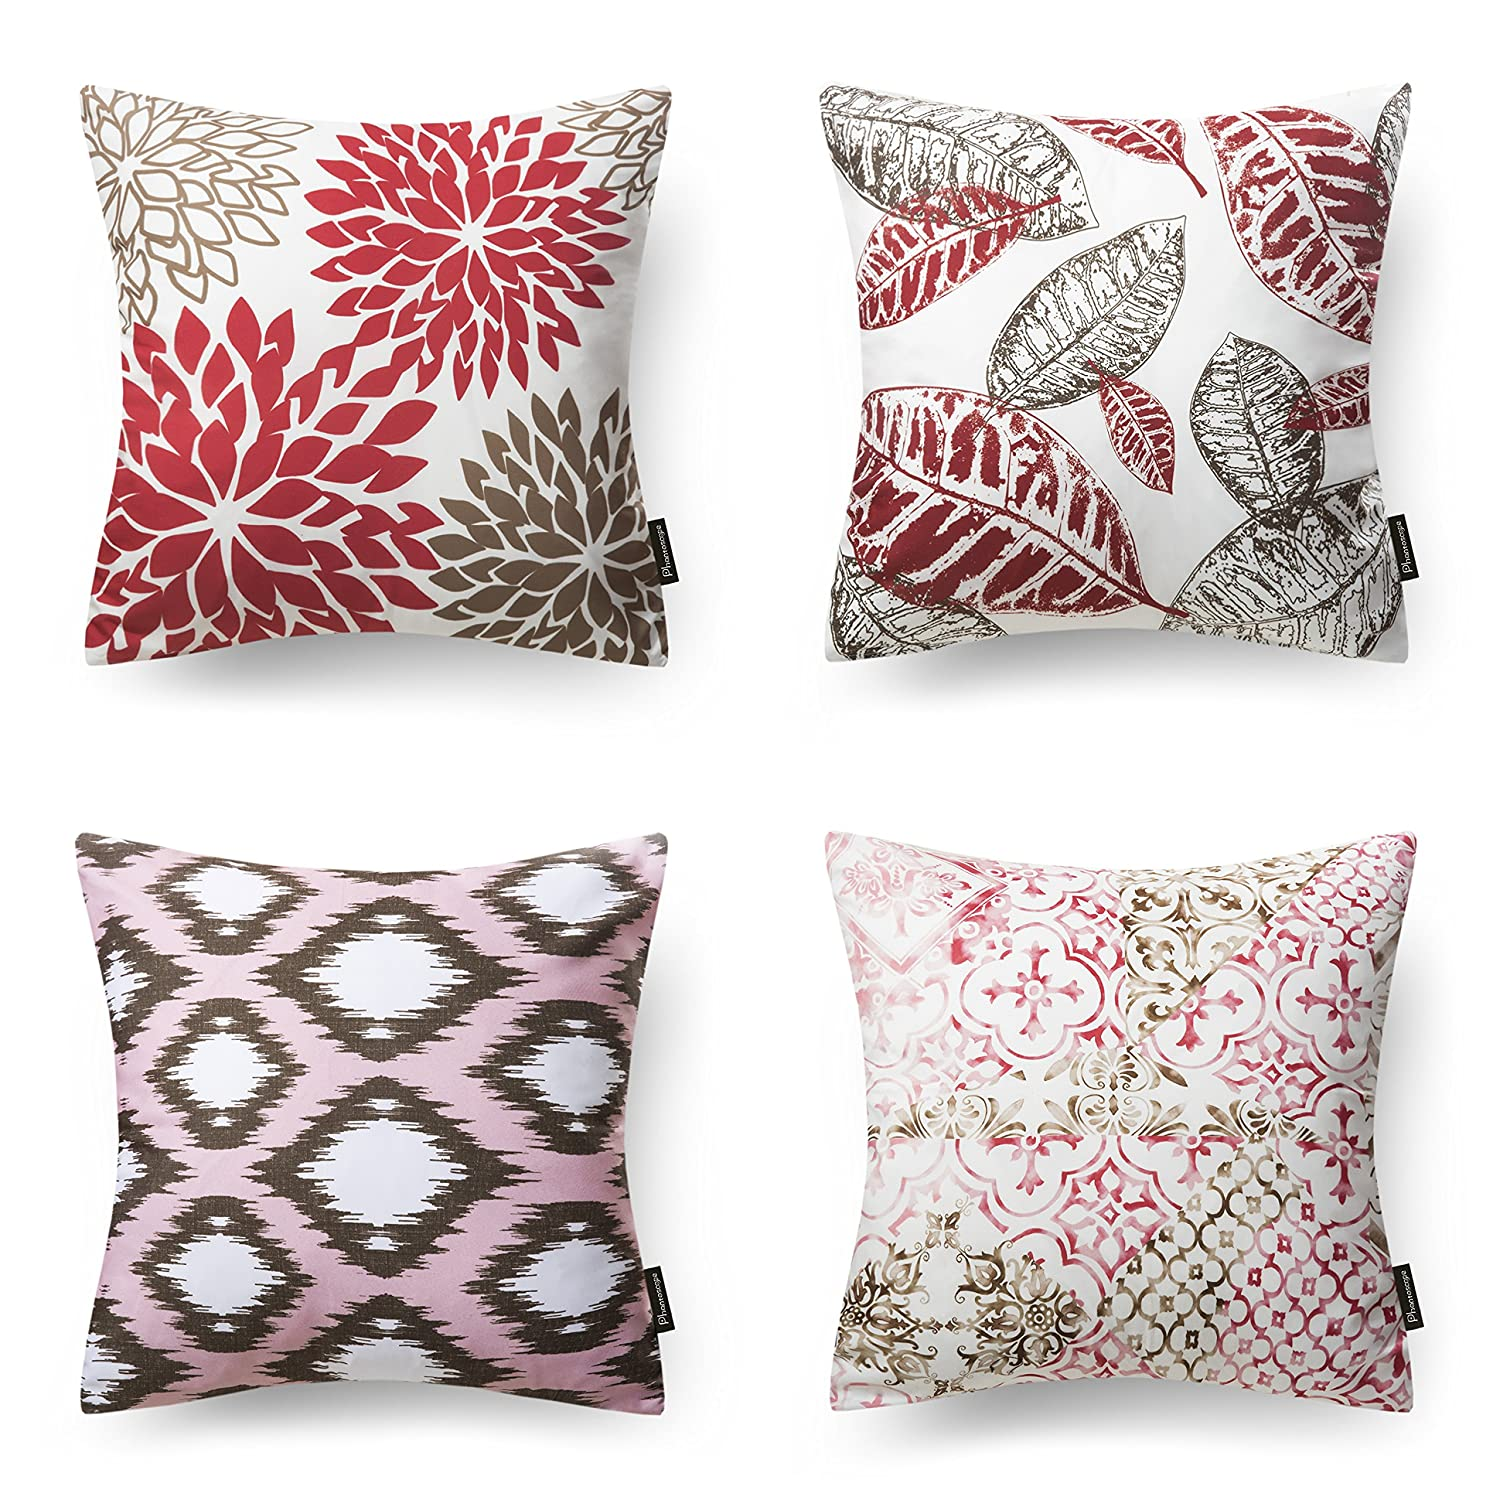 """Phantoscope New Living Series Decorative Throw Pillow Case Cushion Cover Red 18"""" x 18"""" 45cm x 45cm Set of 4"""